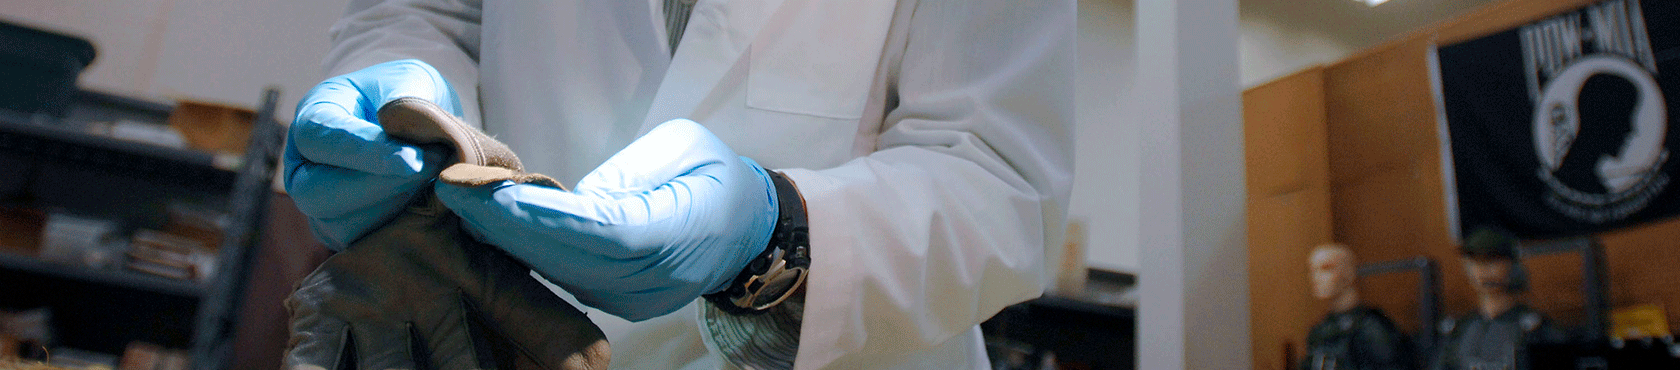 Blue gloves holding gray glove under light